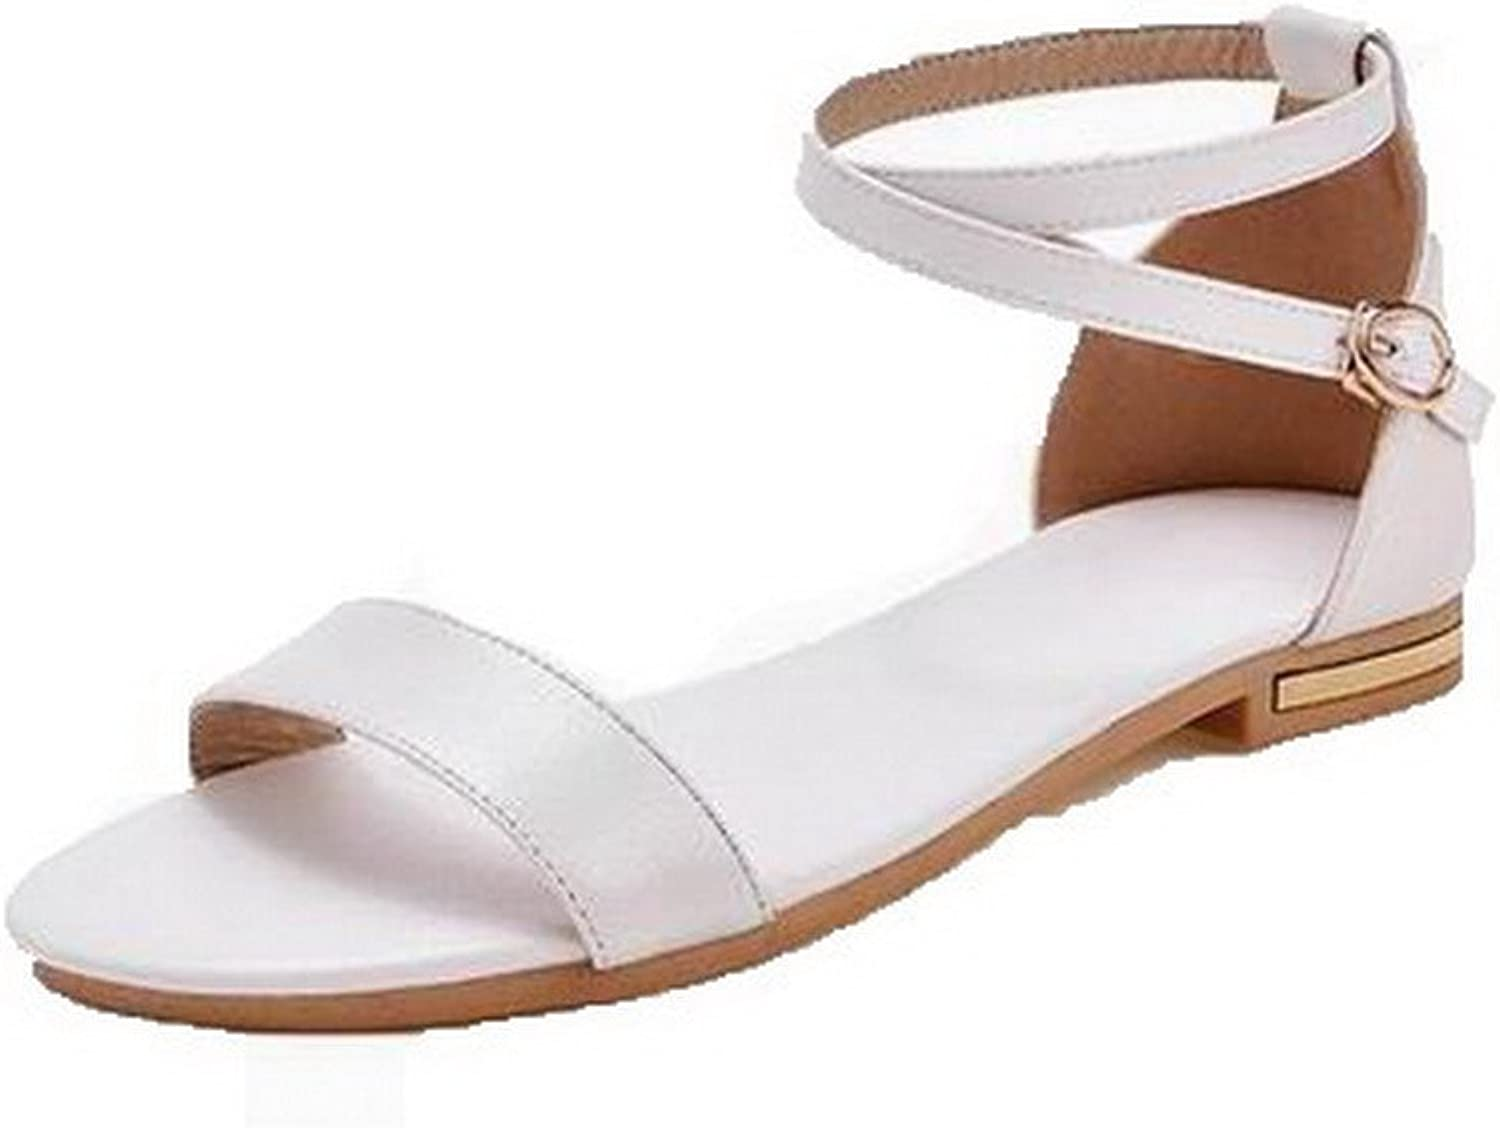 WeenFashion Women's Low-Heels Pu Solid Open-Toe Sandals, White, 34